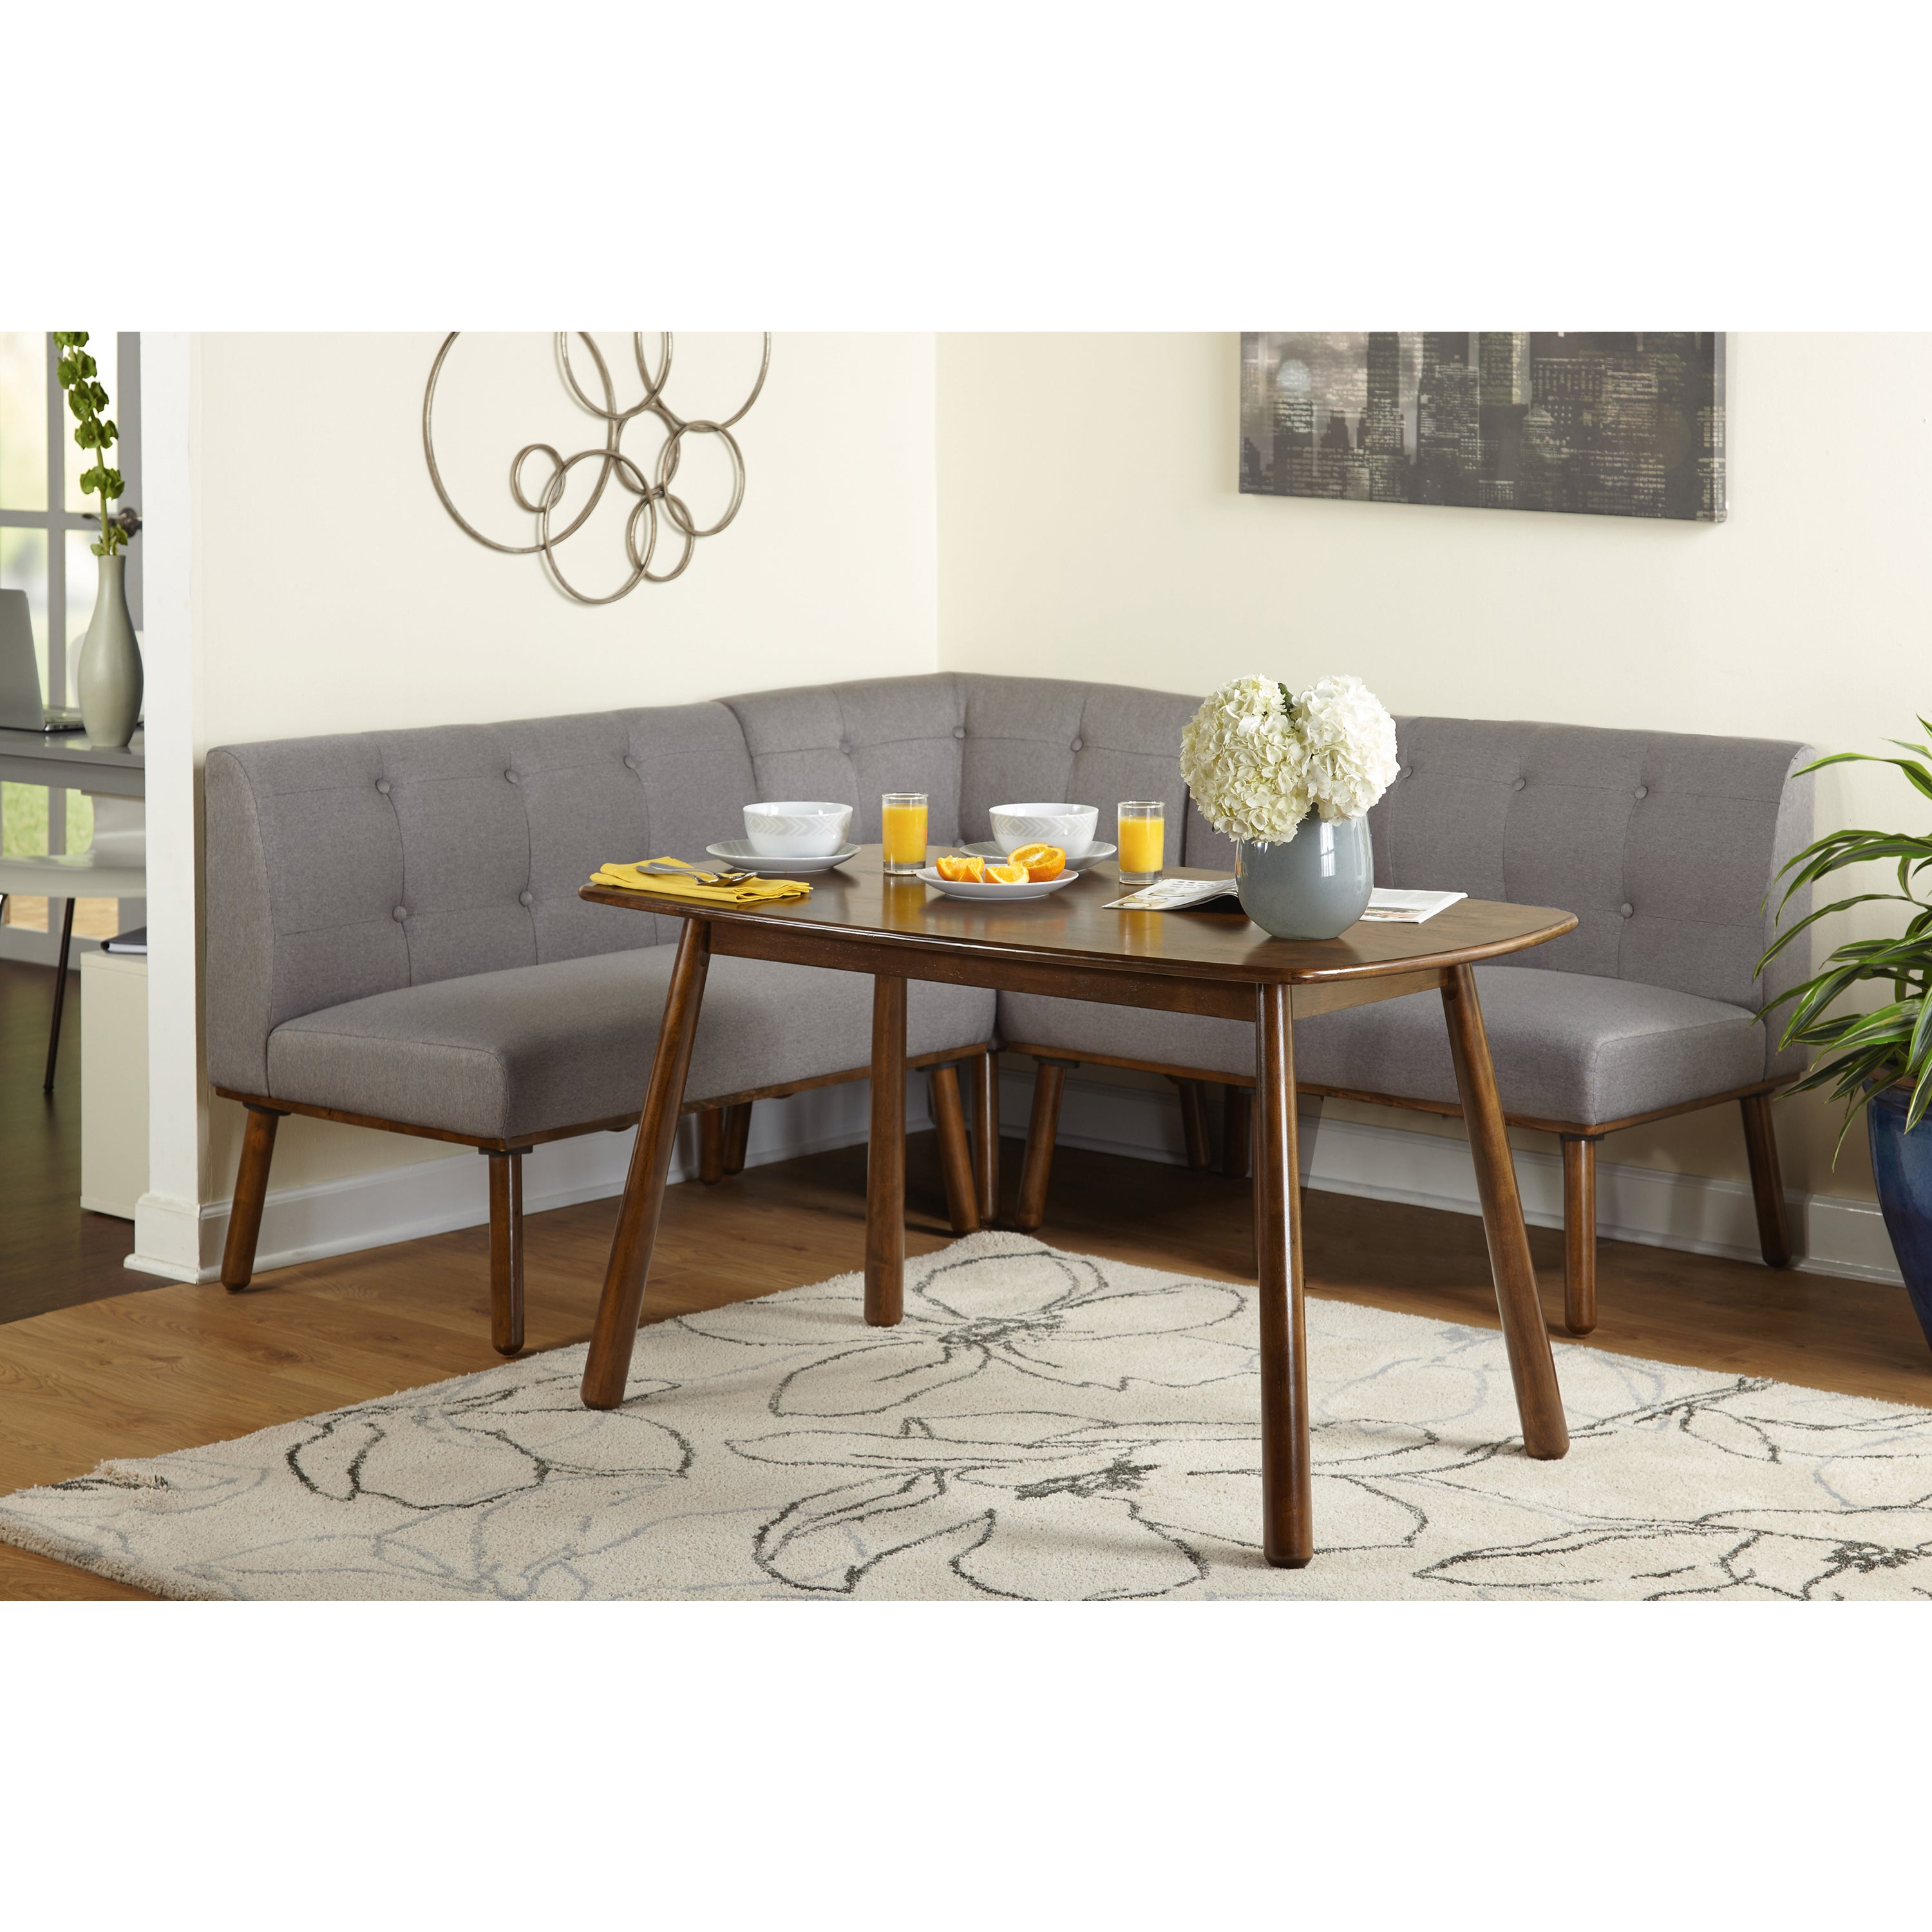 Simple Living 4 Piece Playmate Nook Dining Set Within Most Popular Maloney 3 Piece Breakfast Nook Dining Sets (View 6 of 20)